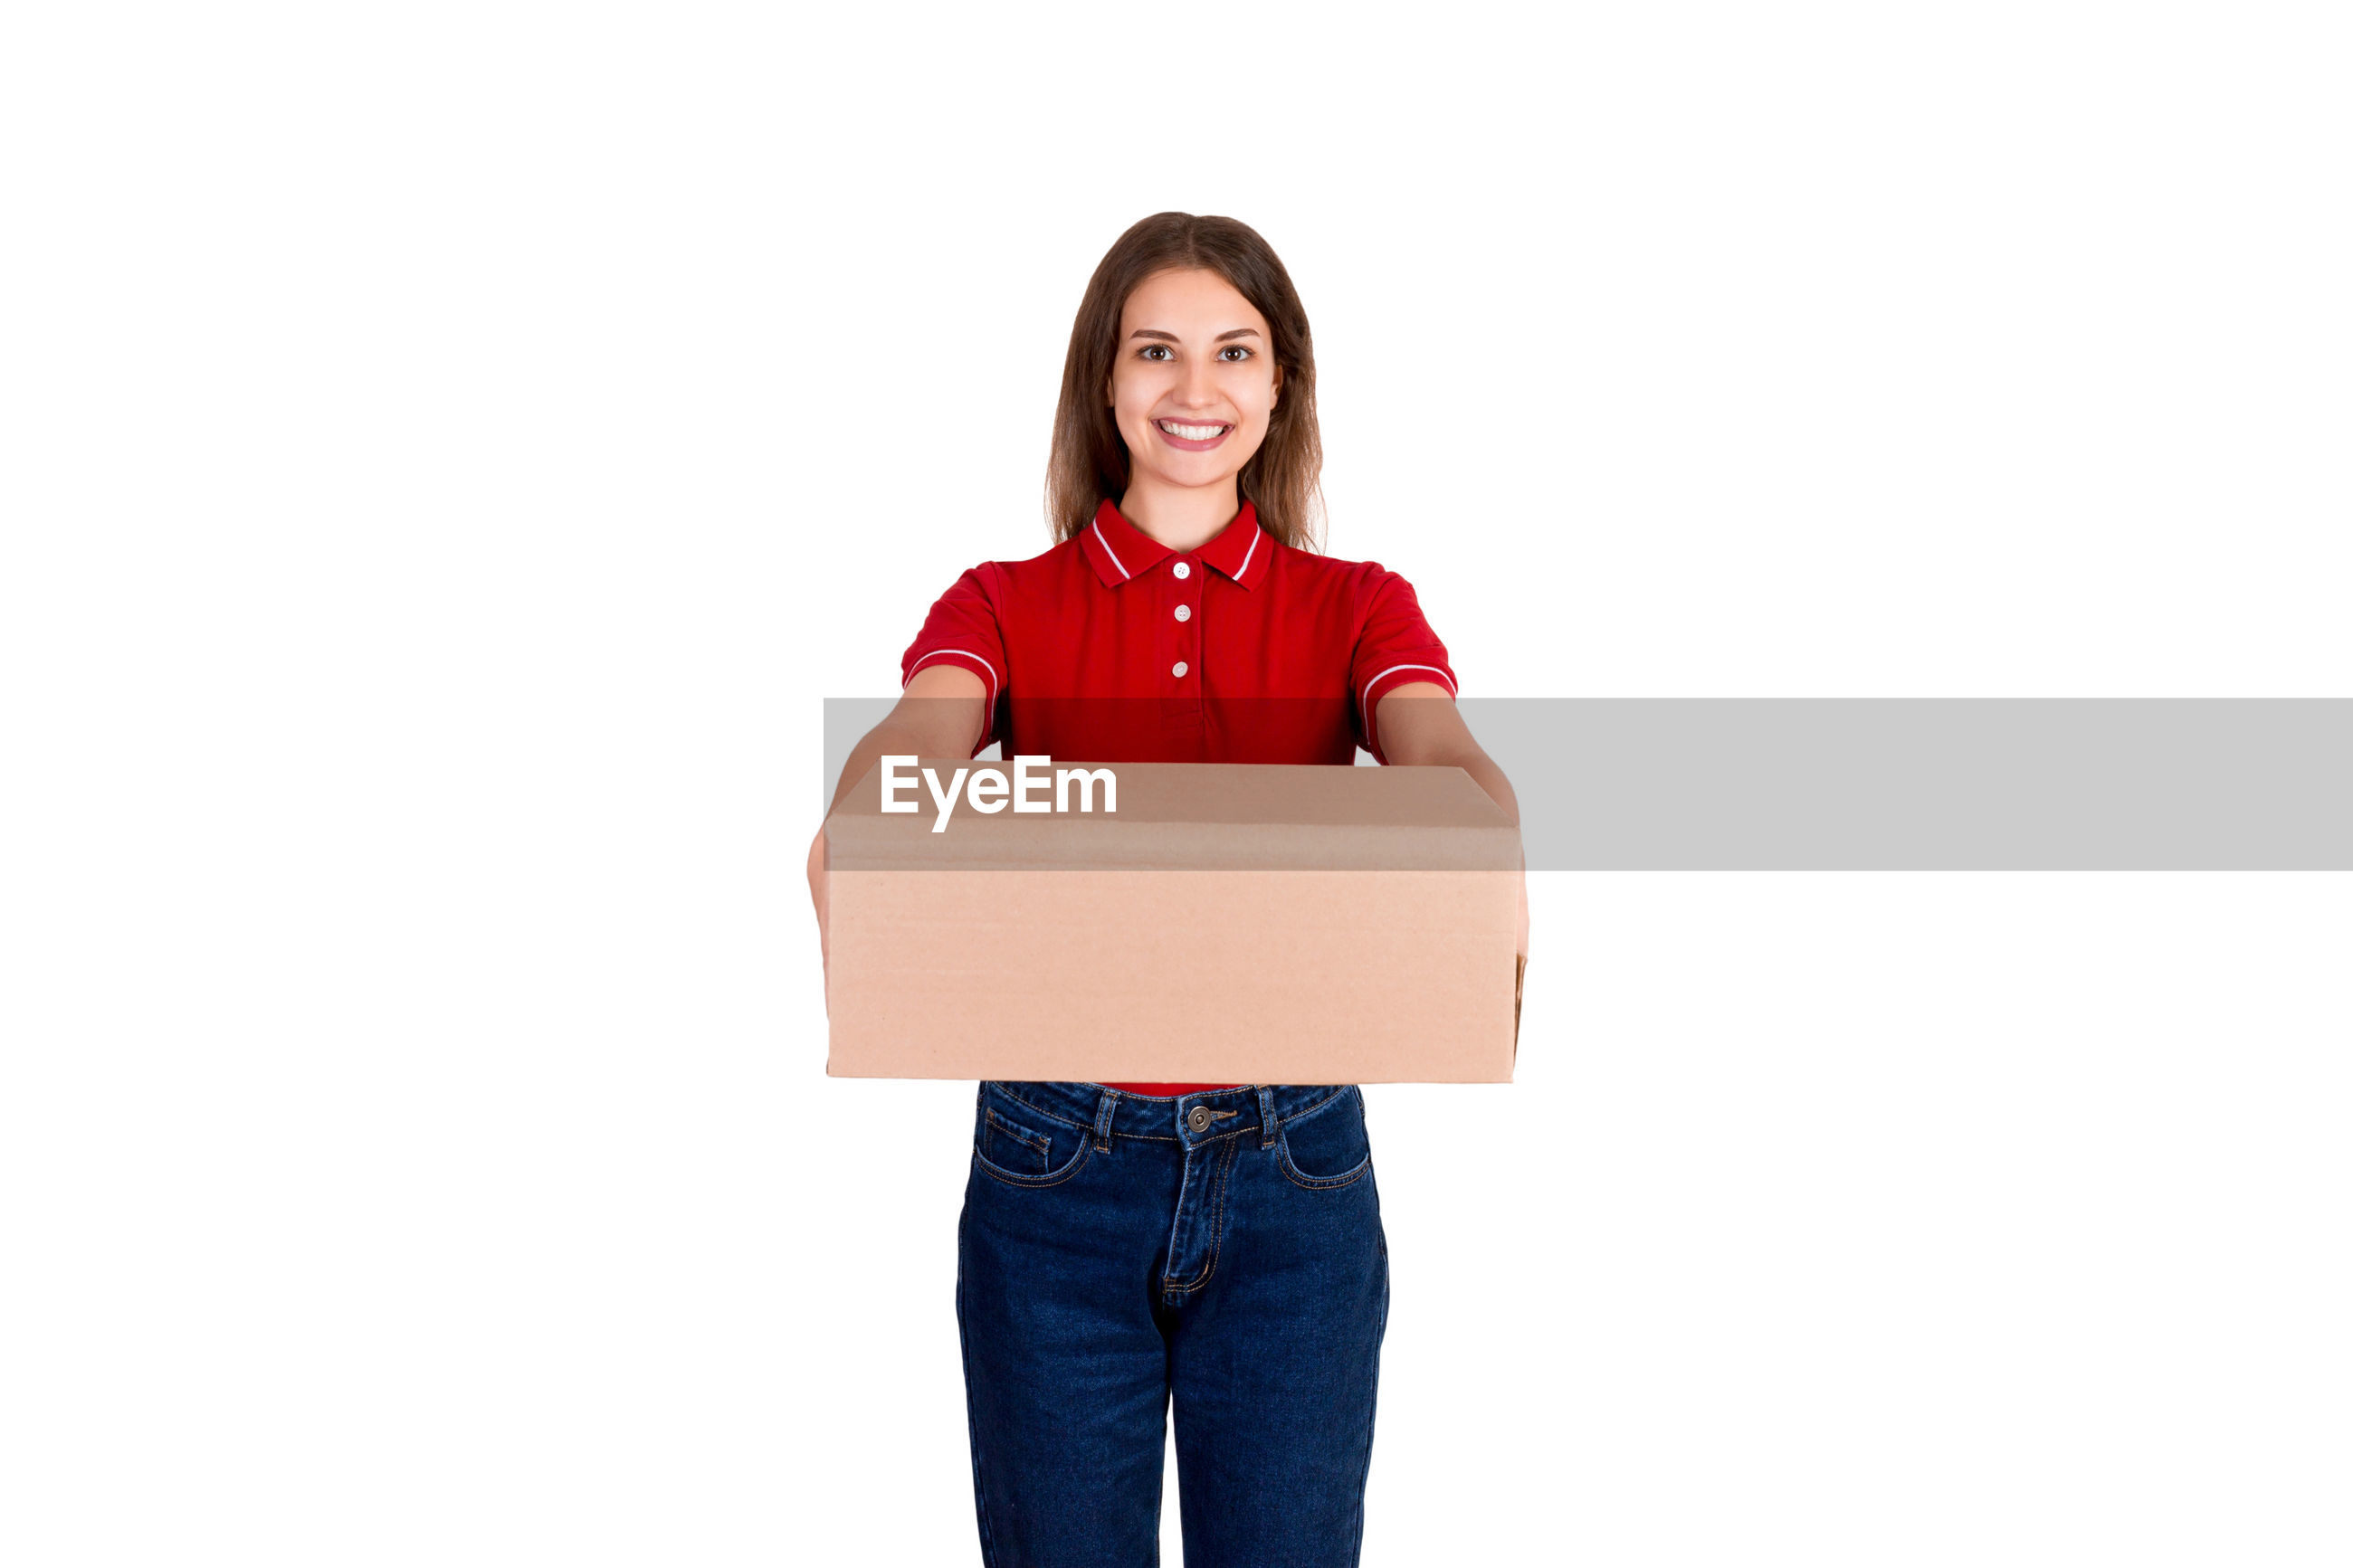 Portrait of smiling delivery woman holding package while standing against white background